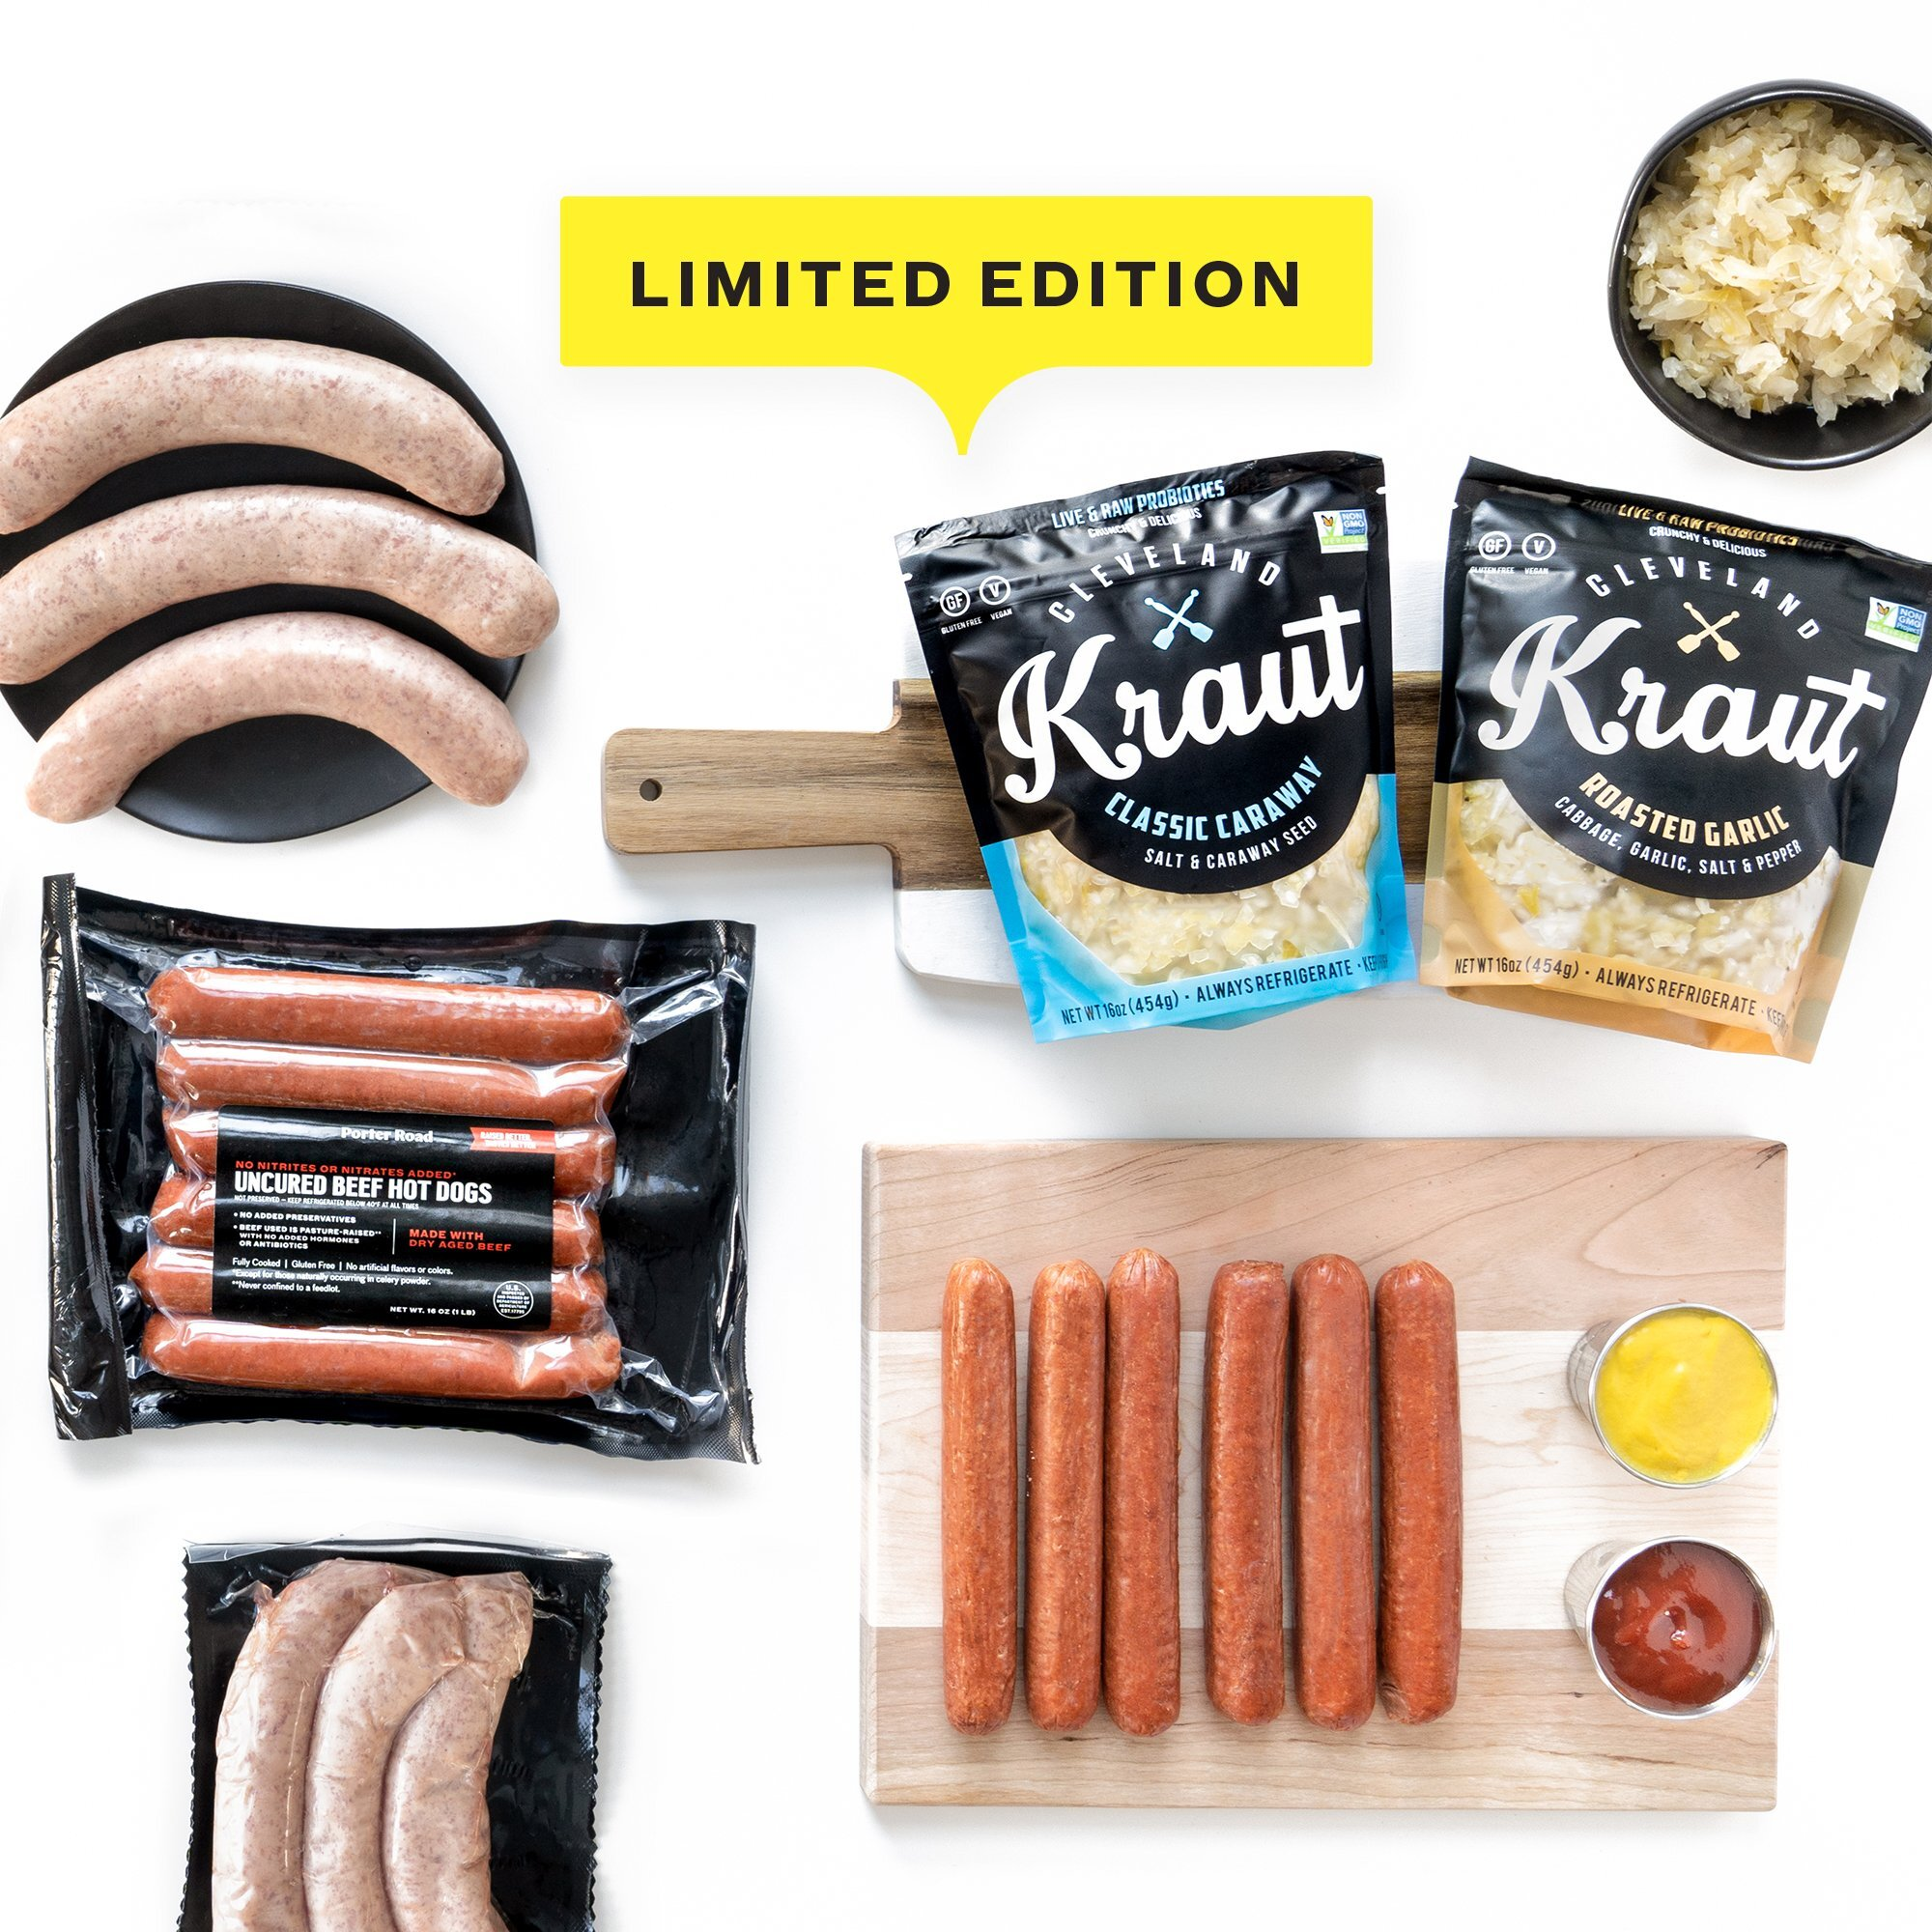 Kick off the summer with a limited edition collaboration bundle from Porter Road and Cleveland Kitchen! Porter Road's BYOBun Kit features Dry Aged Hot Dogs, Pork Brats, CK's Kraut & Roasted Garlic